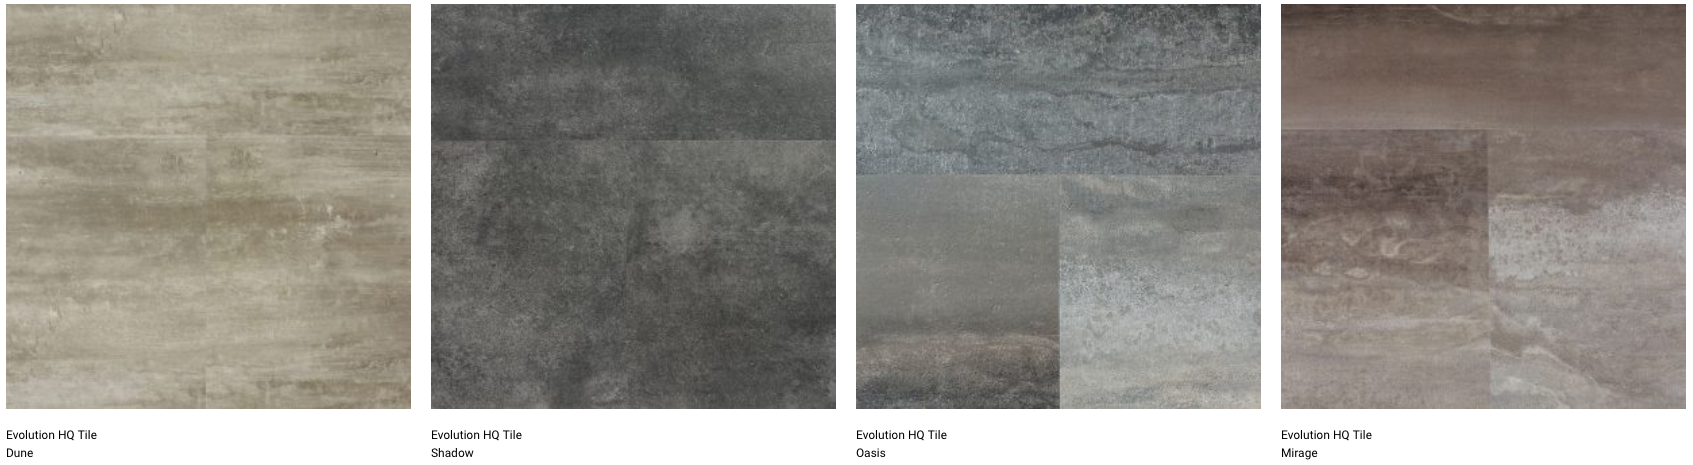 Dune - Mirage - Oasis - Shadow - 12x24 Evolution HQ 5.5MM WPC VINYL TILE FLOORING 12X24 EVOLUTION HQ WPC VINYL TILE FLOORING 100% WATERPROOF 5.5MM WPC 5G CLICK VINYL TILE Dimensions: Thickness: 5.5 mm (7/32″) Width: 305 mm (12″) Length: 610 mm (24″) Coverage: 22.03 sq.ft / box Finish: Micro bevel Grade: heavy commercial Installation: glue less clic locking system Wear layer: 0.3 mm Warranty: 25 year residential / 5 year commercial